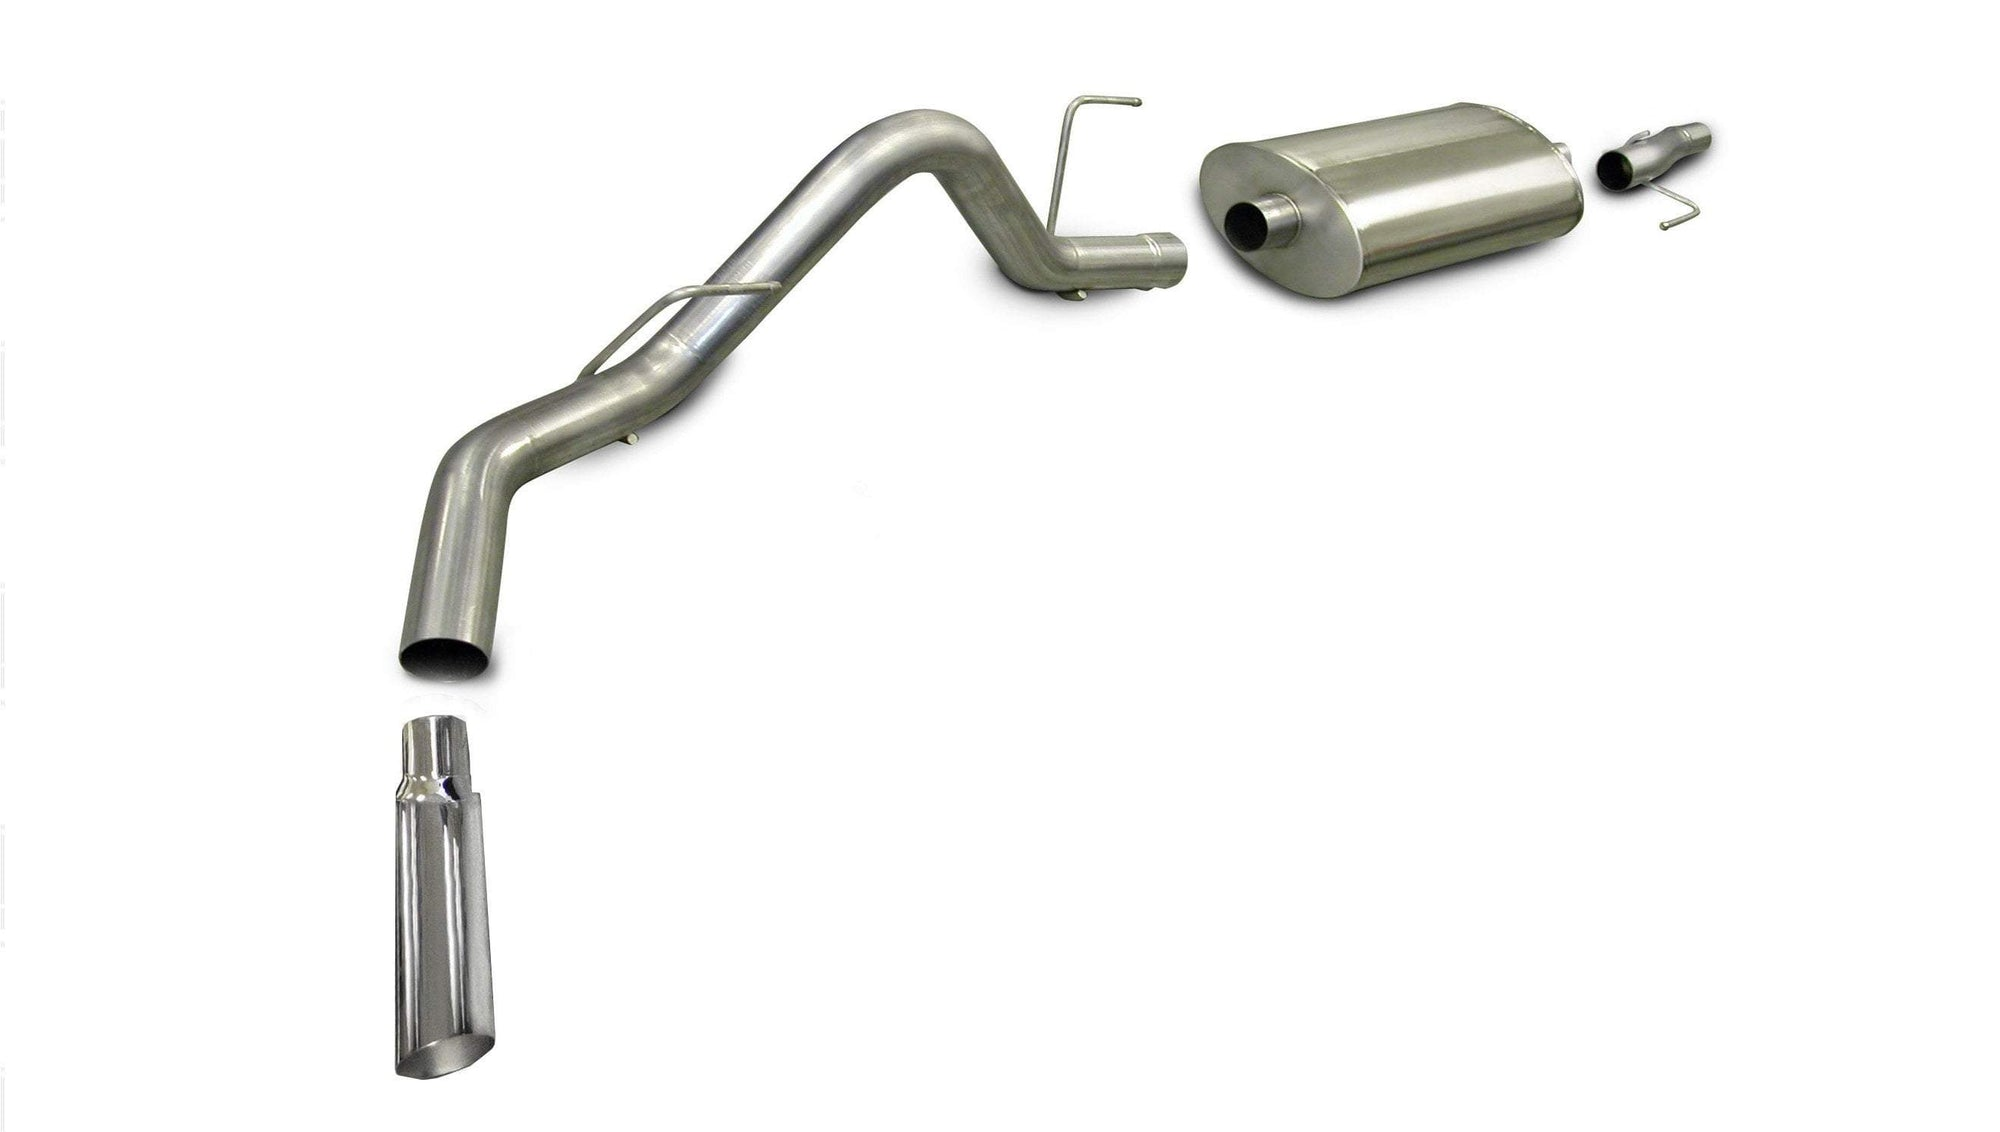 "dB Cat-Back Exhaust Polished / Sport / Single Side - Single 4in Slash Cut 2009-2010 Ford F-150 4.6L & 5.0L V8 3.0"" Single Side Exit Catback Exhaust System with 4.0"" Tip (24310) Sport Sound Level"